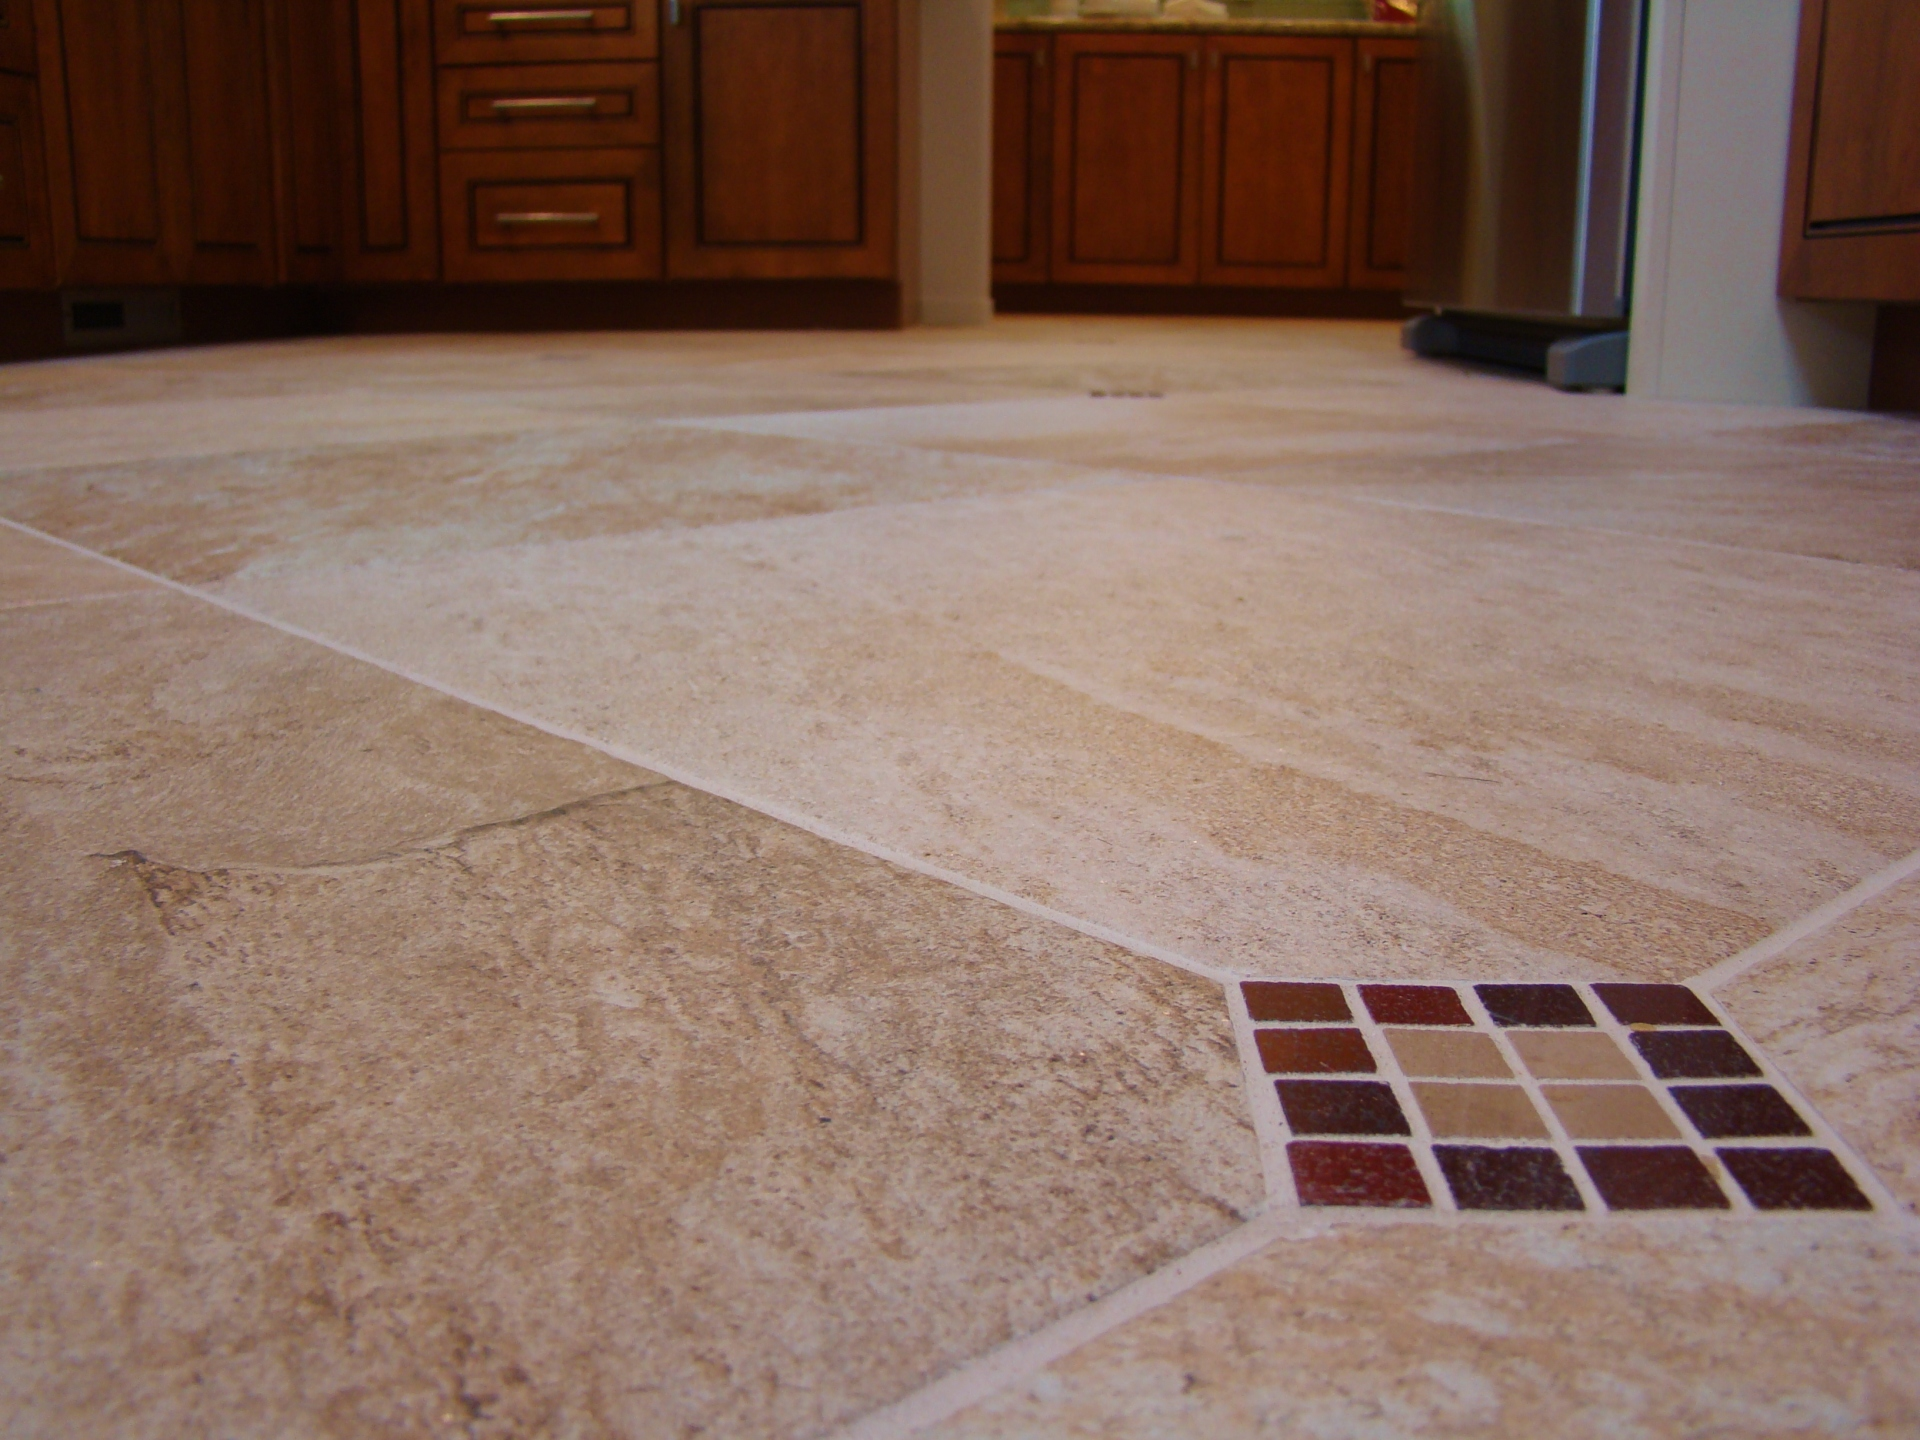 Fiorito Interior Design, interior design, remodel, kitchen, light and dark cabinetry, custom tile floor, marble mosaic